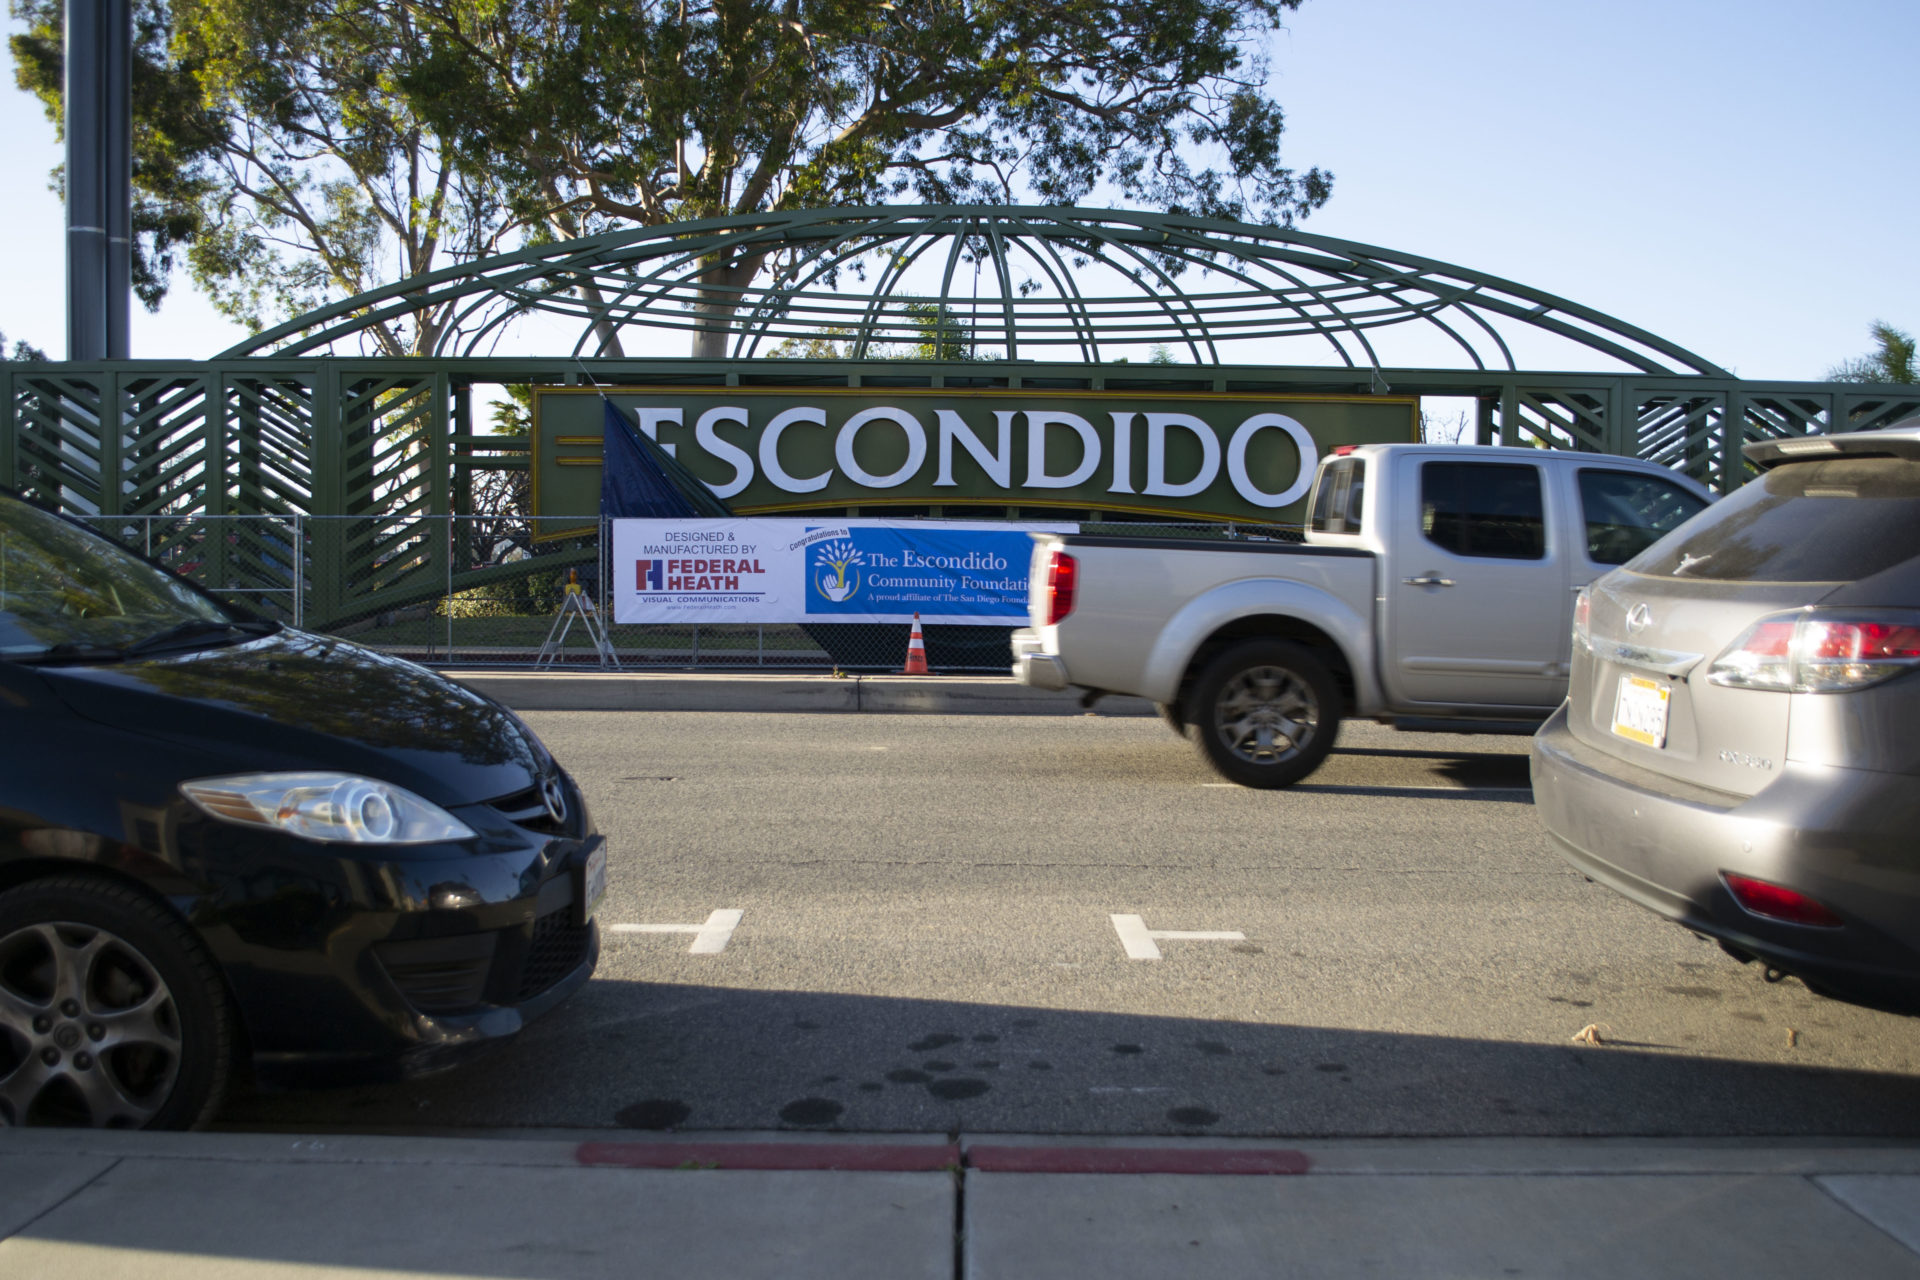 green escondido arch from streetview with cars driving